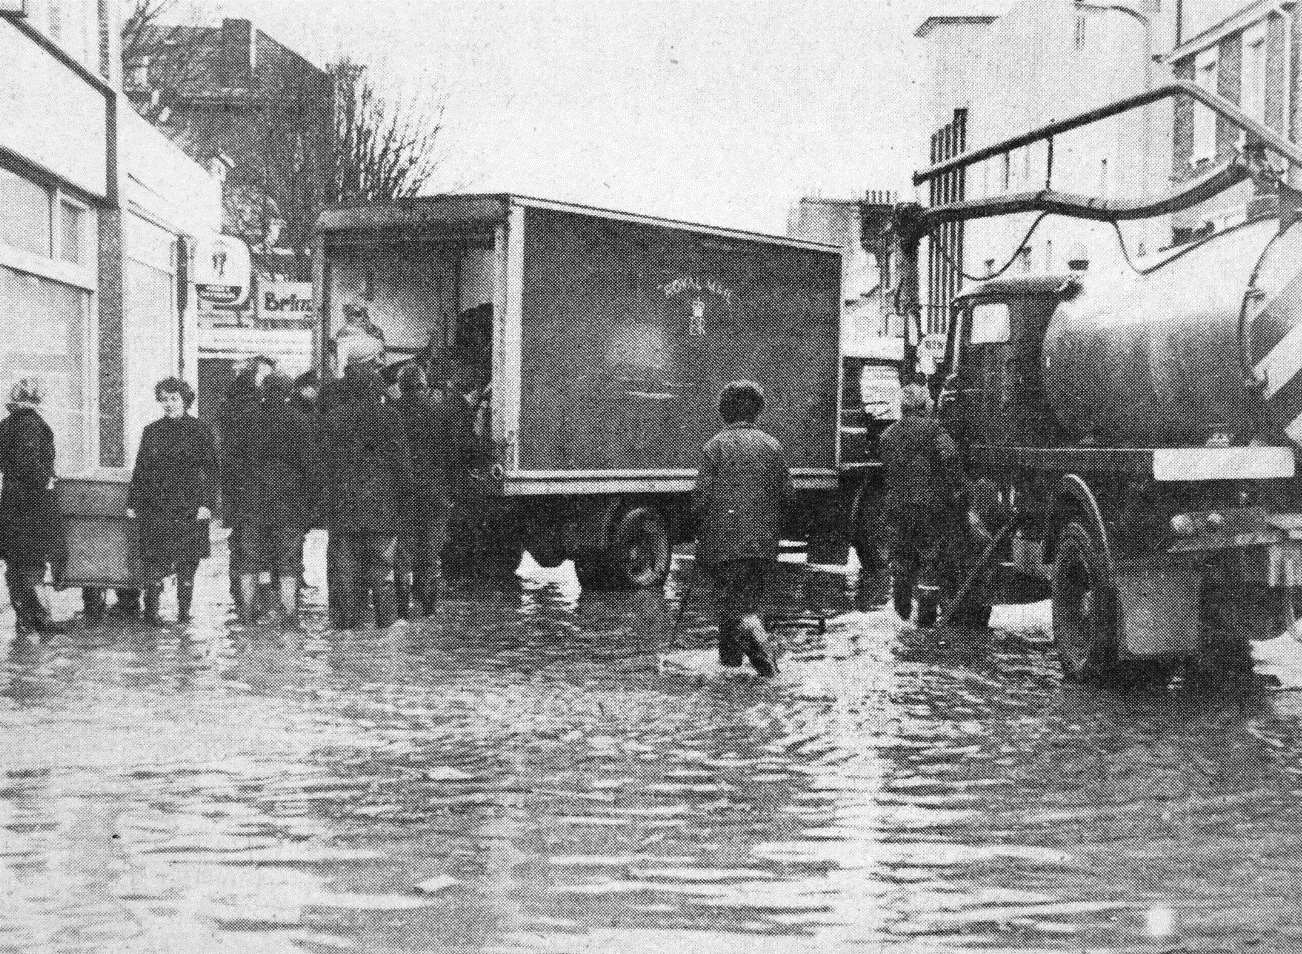 The Royal Mail had to get through - even when Sheerness Post office was flooded by the sea in January 1978. KM Photographer